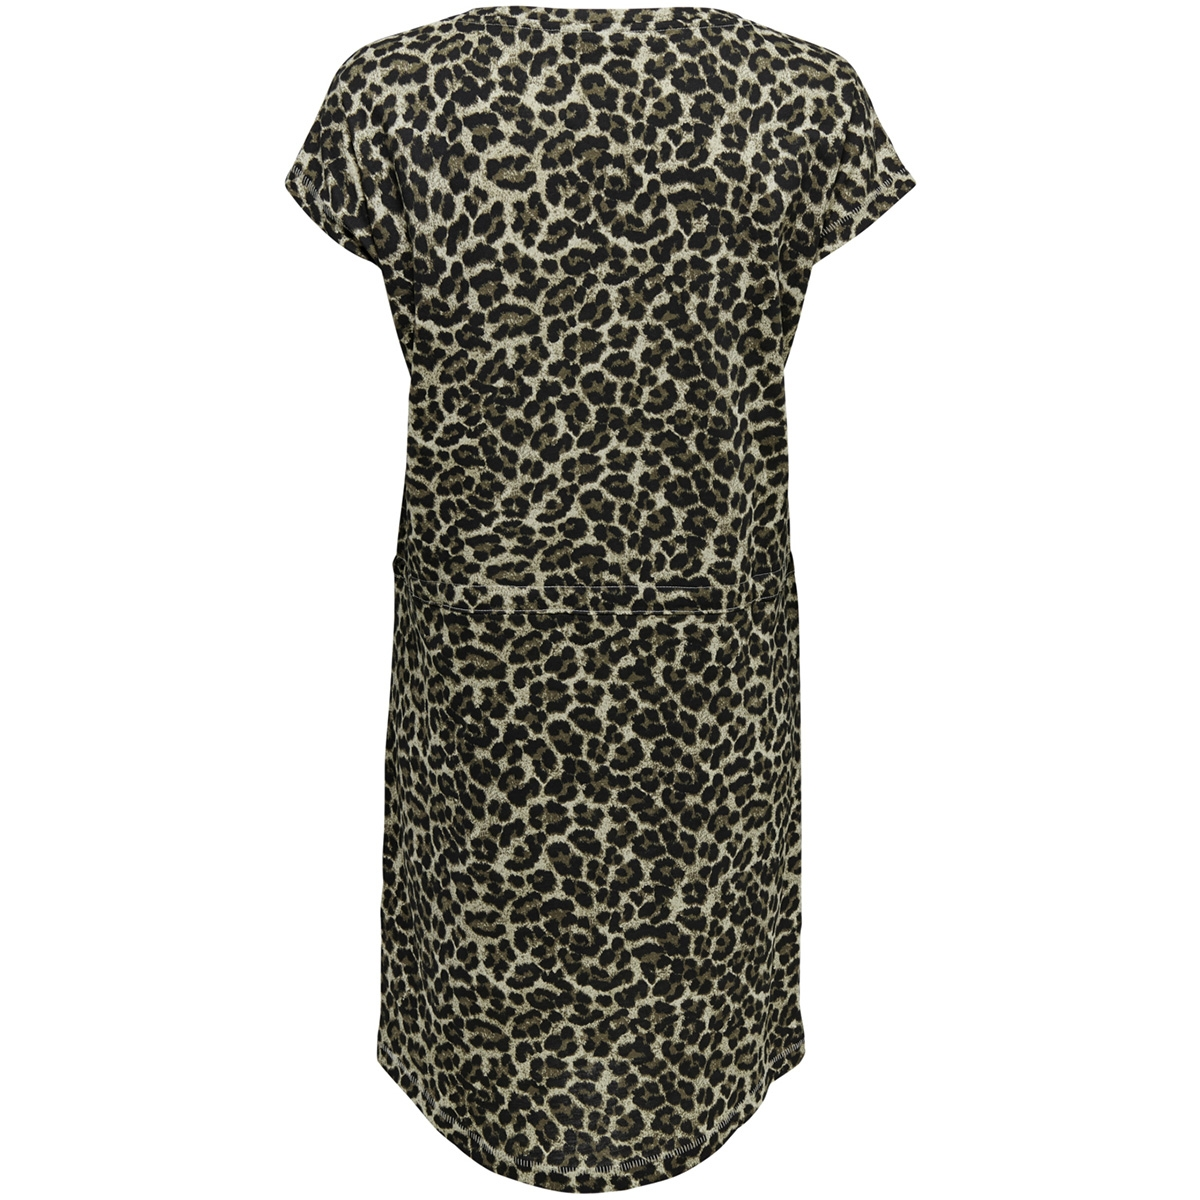 onlmay s/s dress noos 15153021 only jurk pumice stone